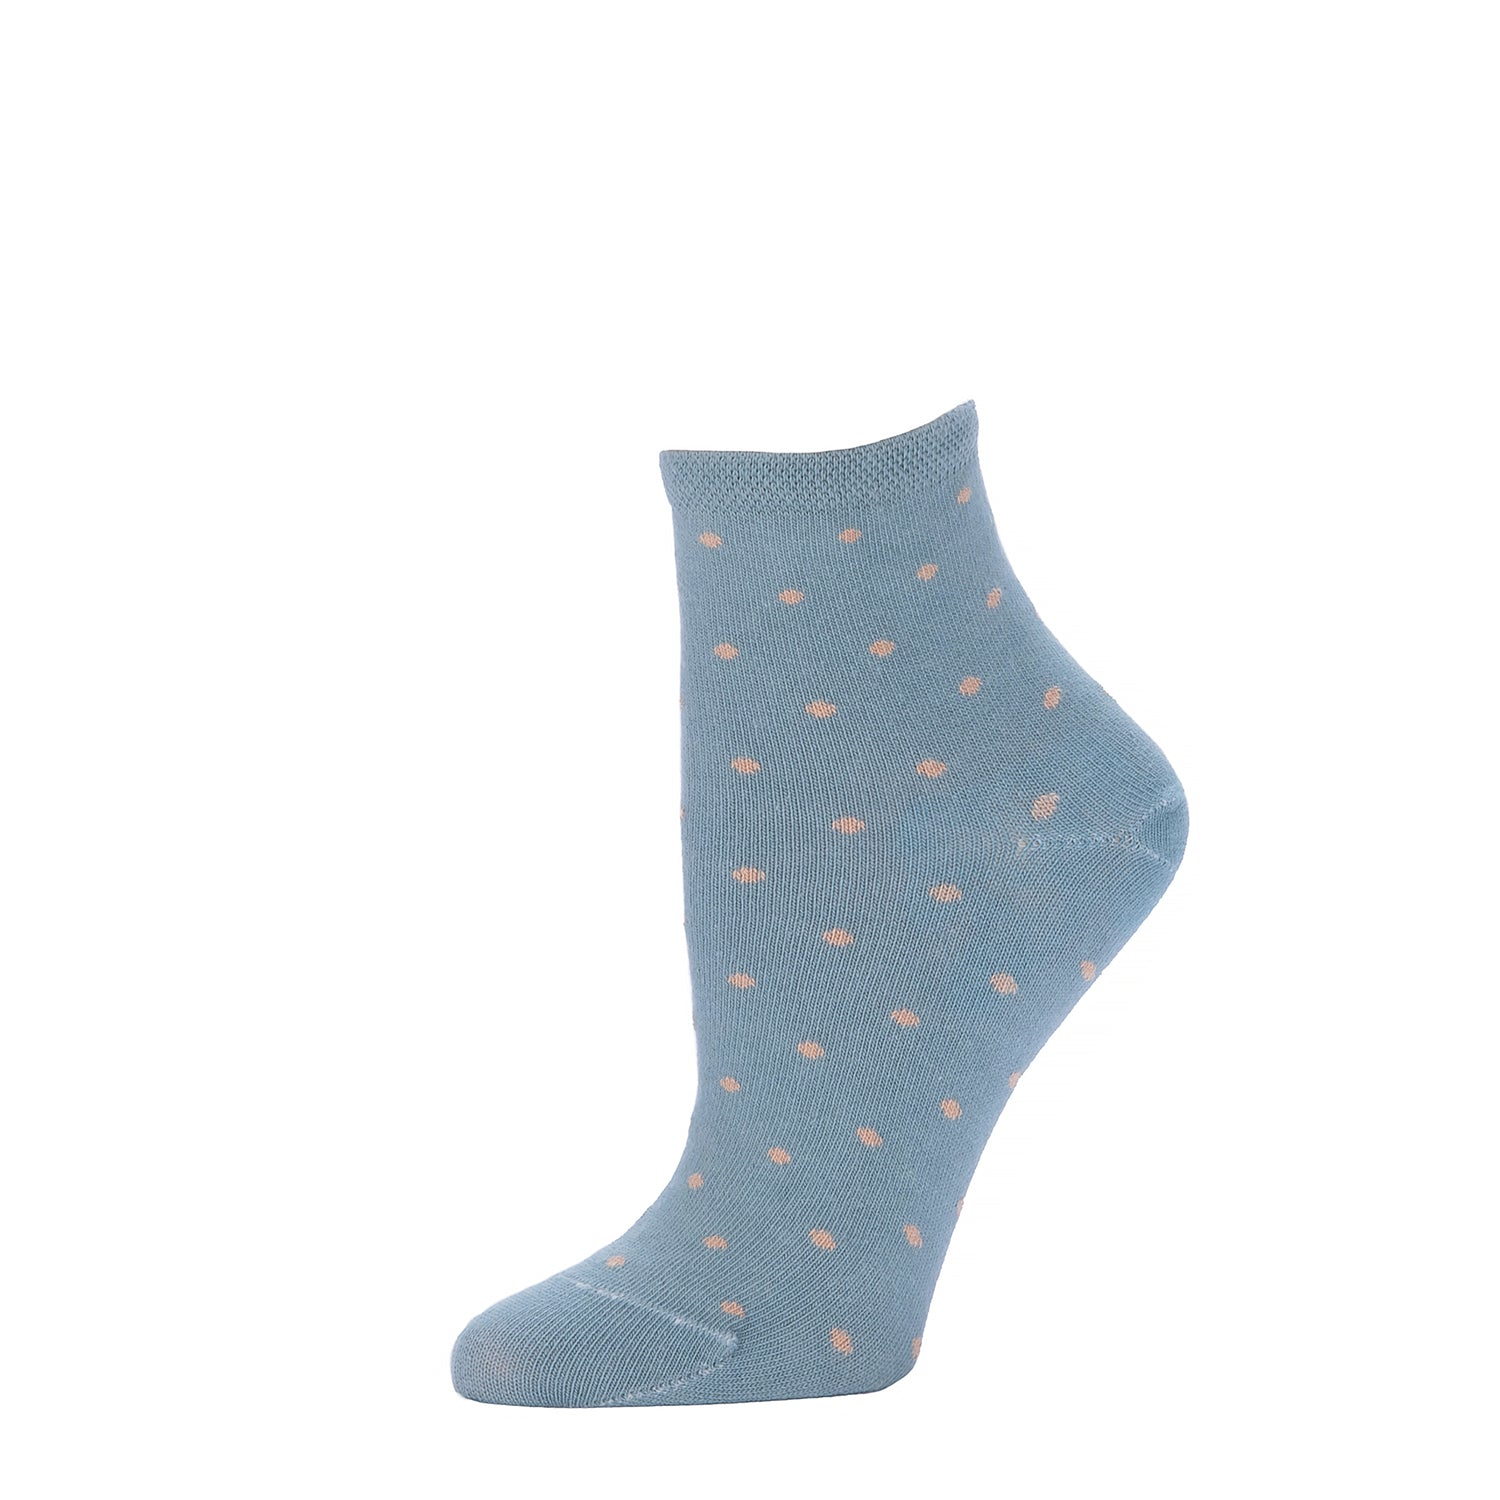 Polka Dot Ankle- Moonstone